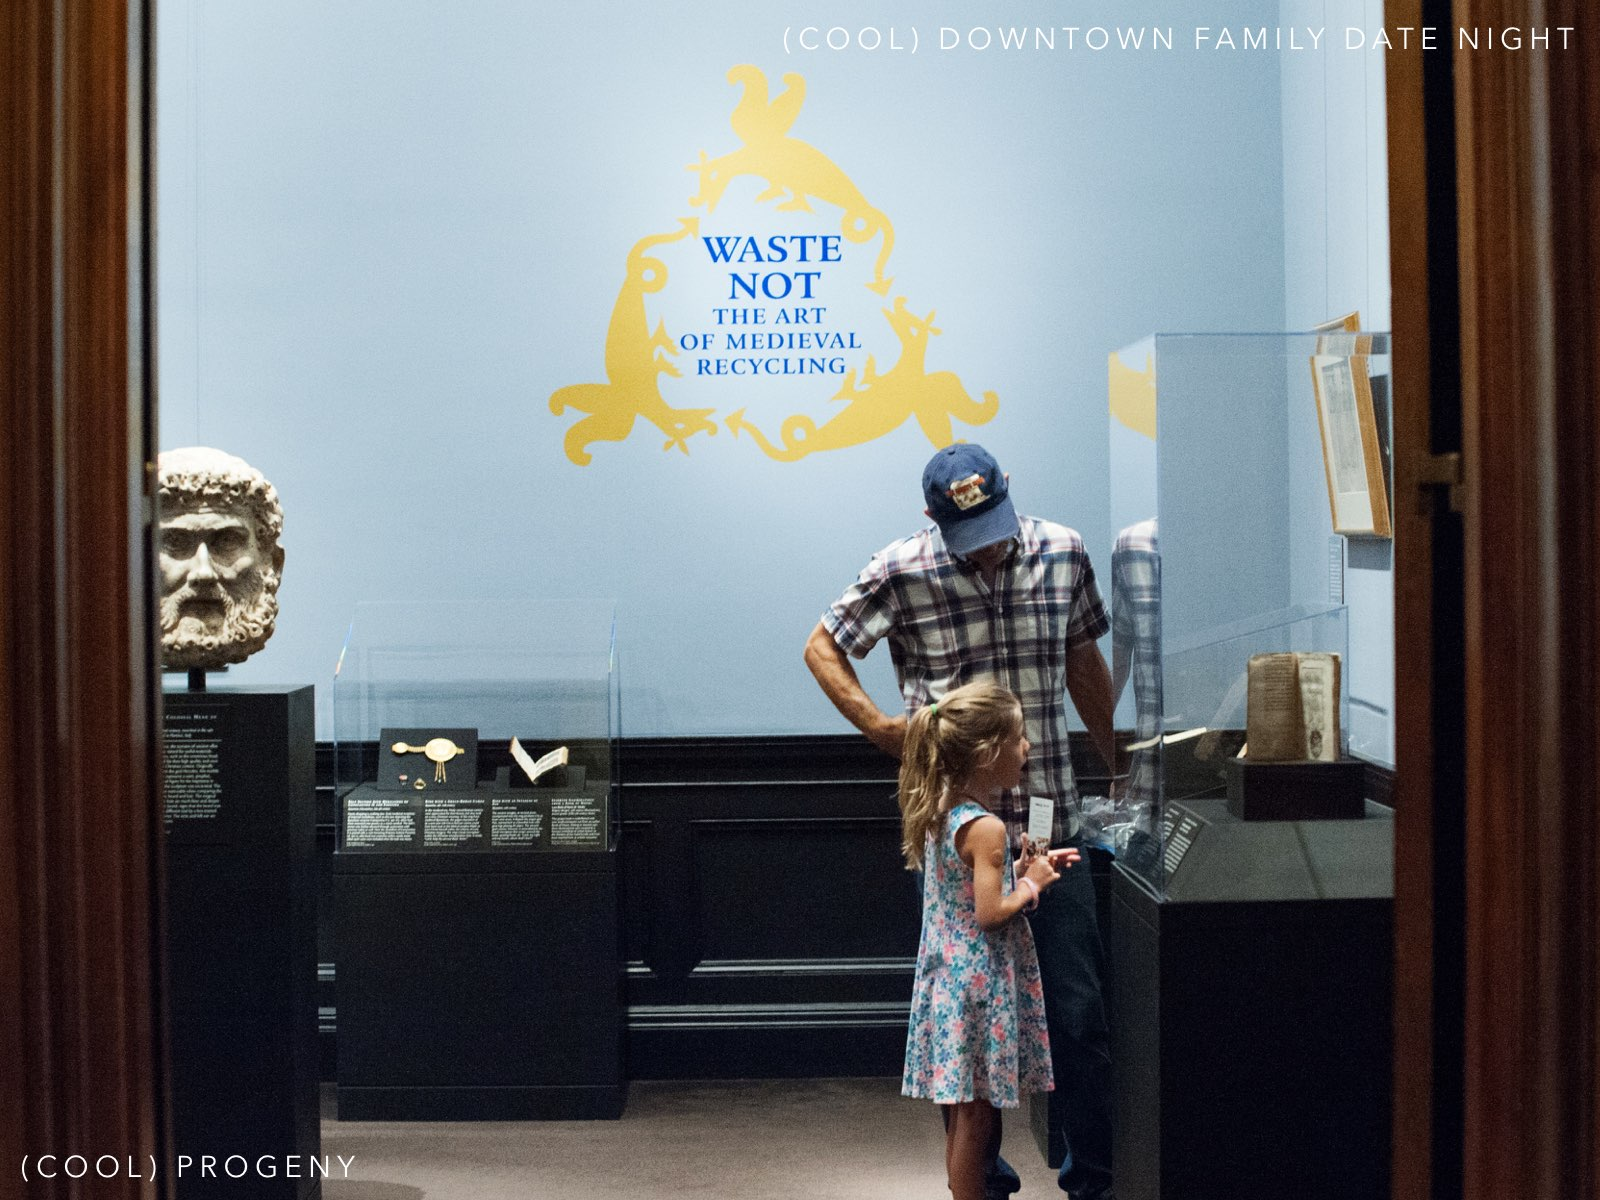 (cool) downtown family date night at the walters art museum - (cool) progeny. photo by laura black. copyright (cool) progeny.